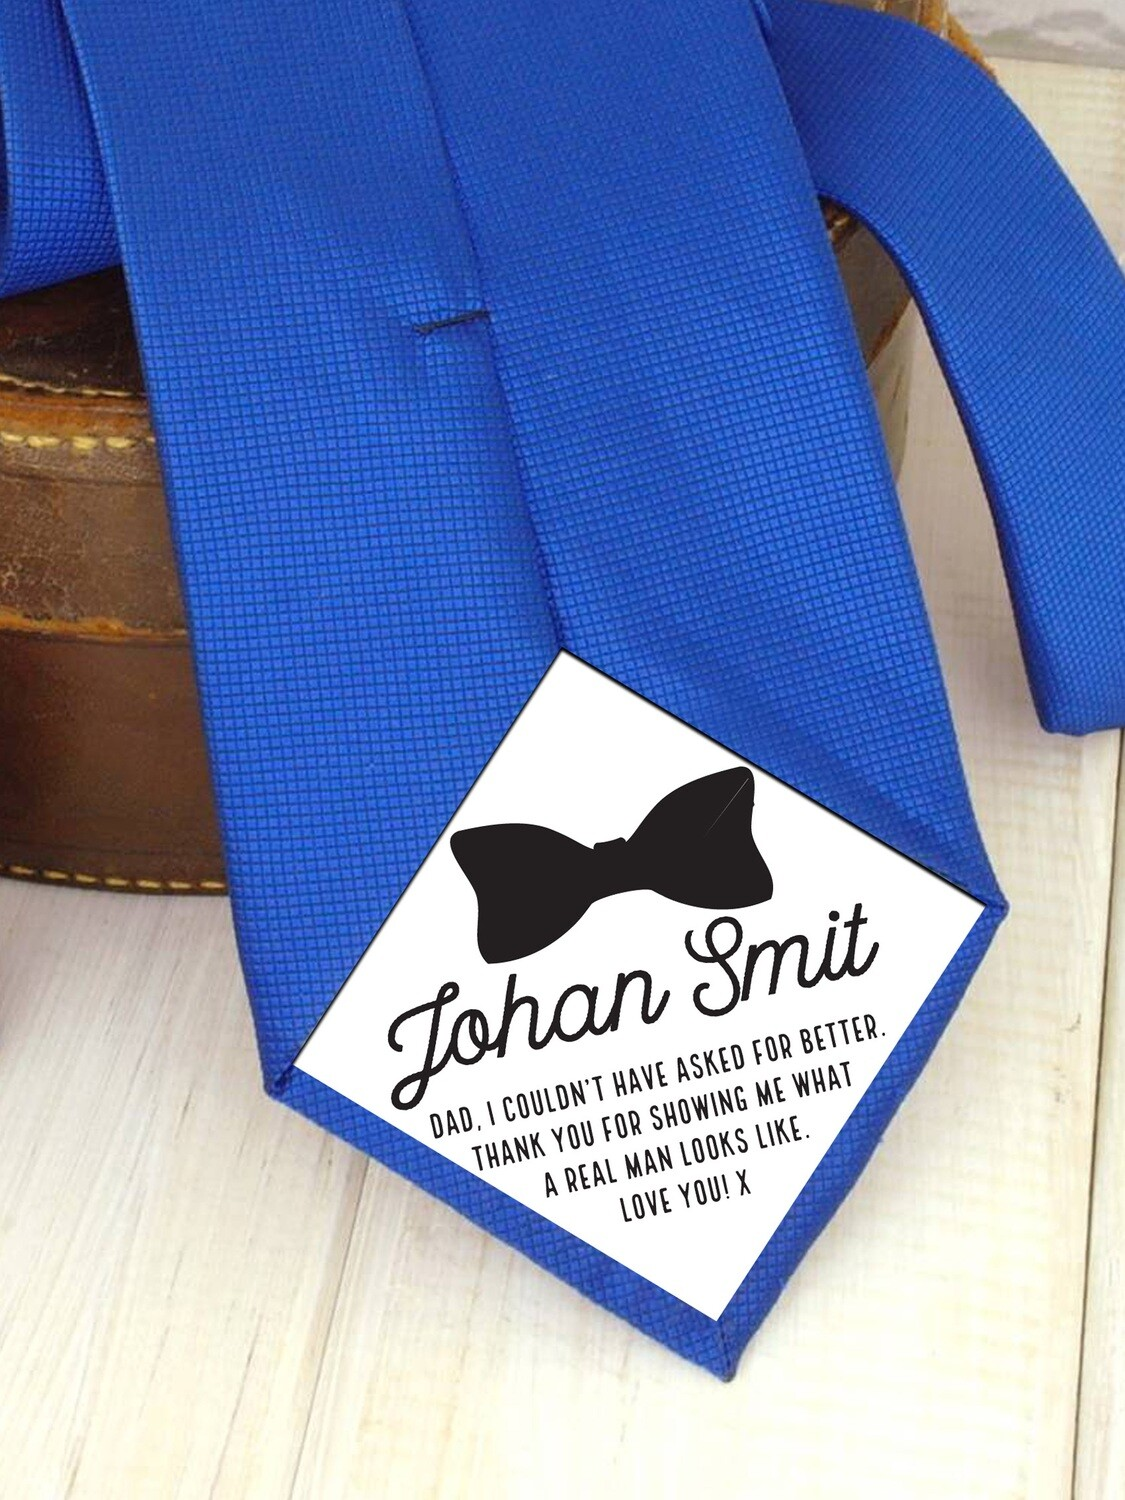 Personalized Tie Patch